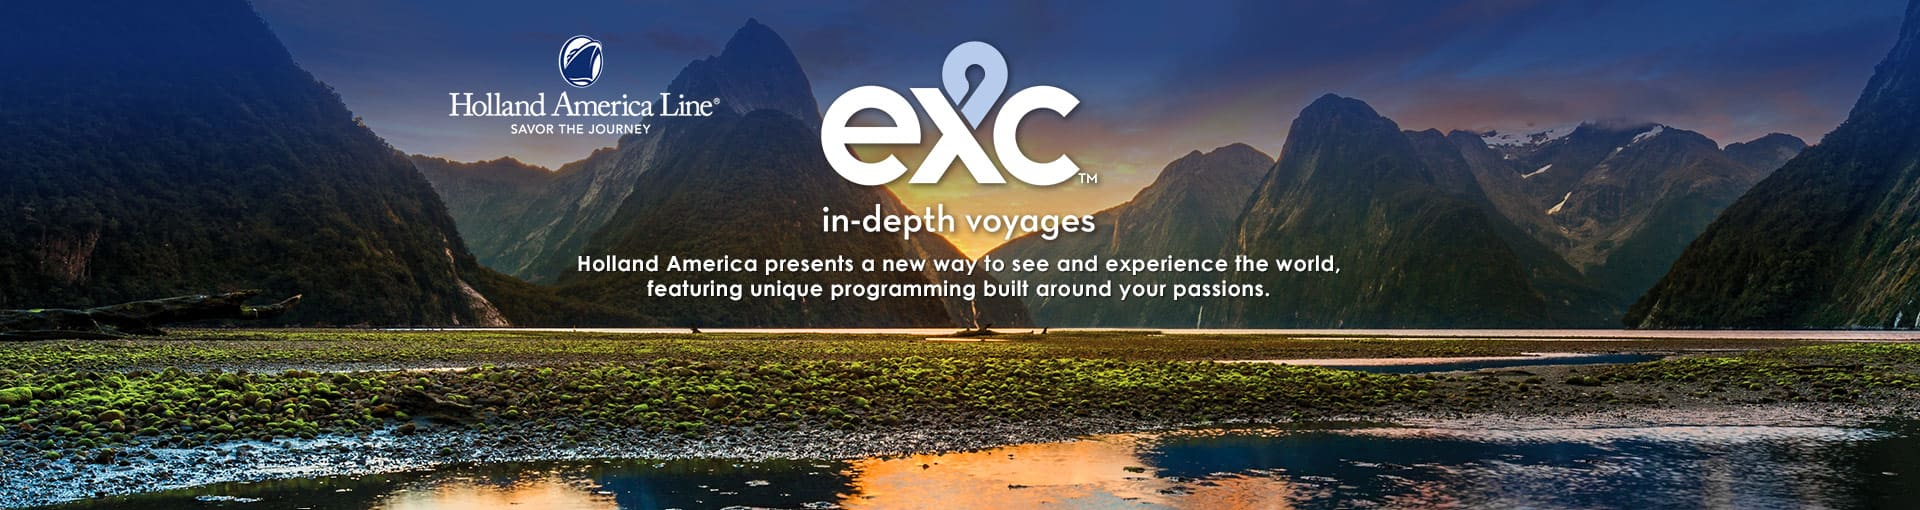 Holland America EXC In-Depth Voyages